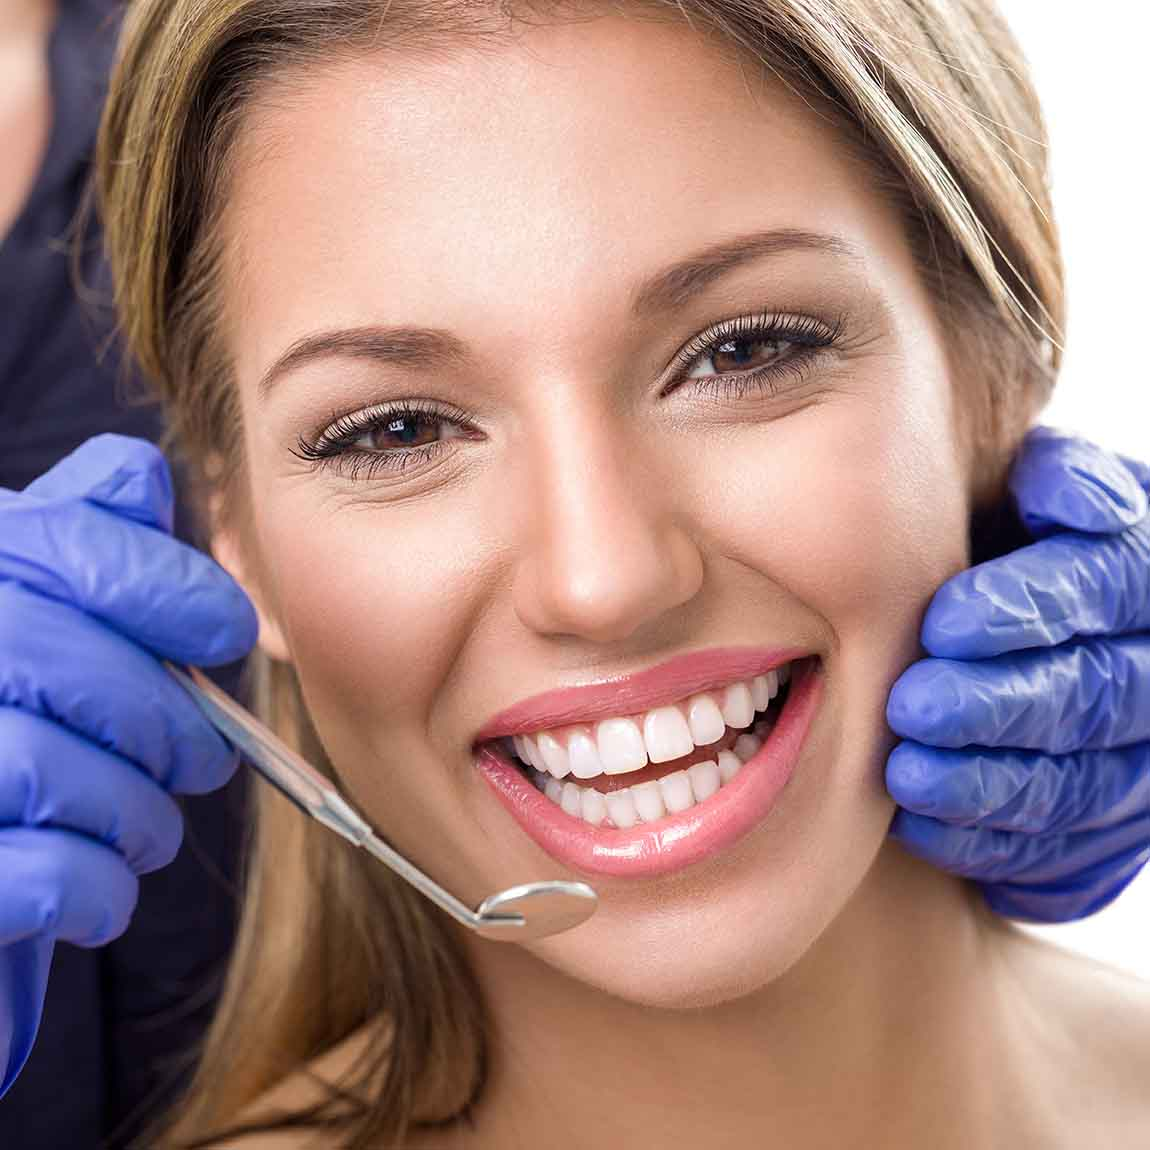 pagamenti | Centri Dental Art Mantova